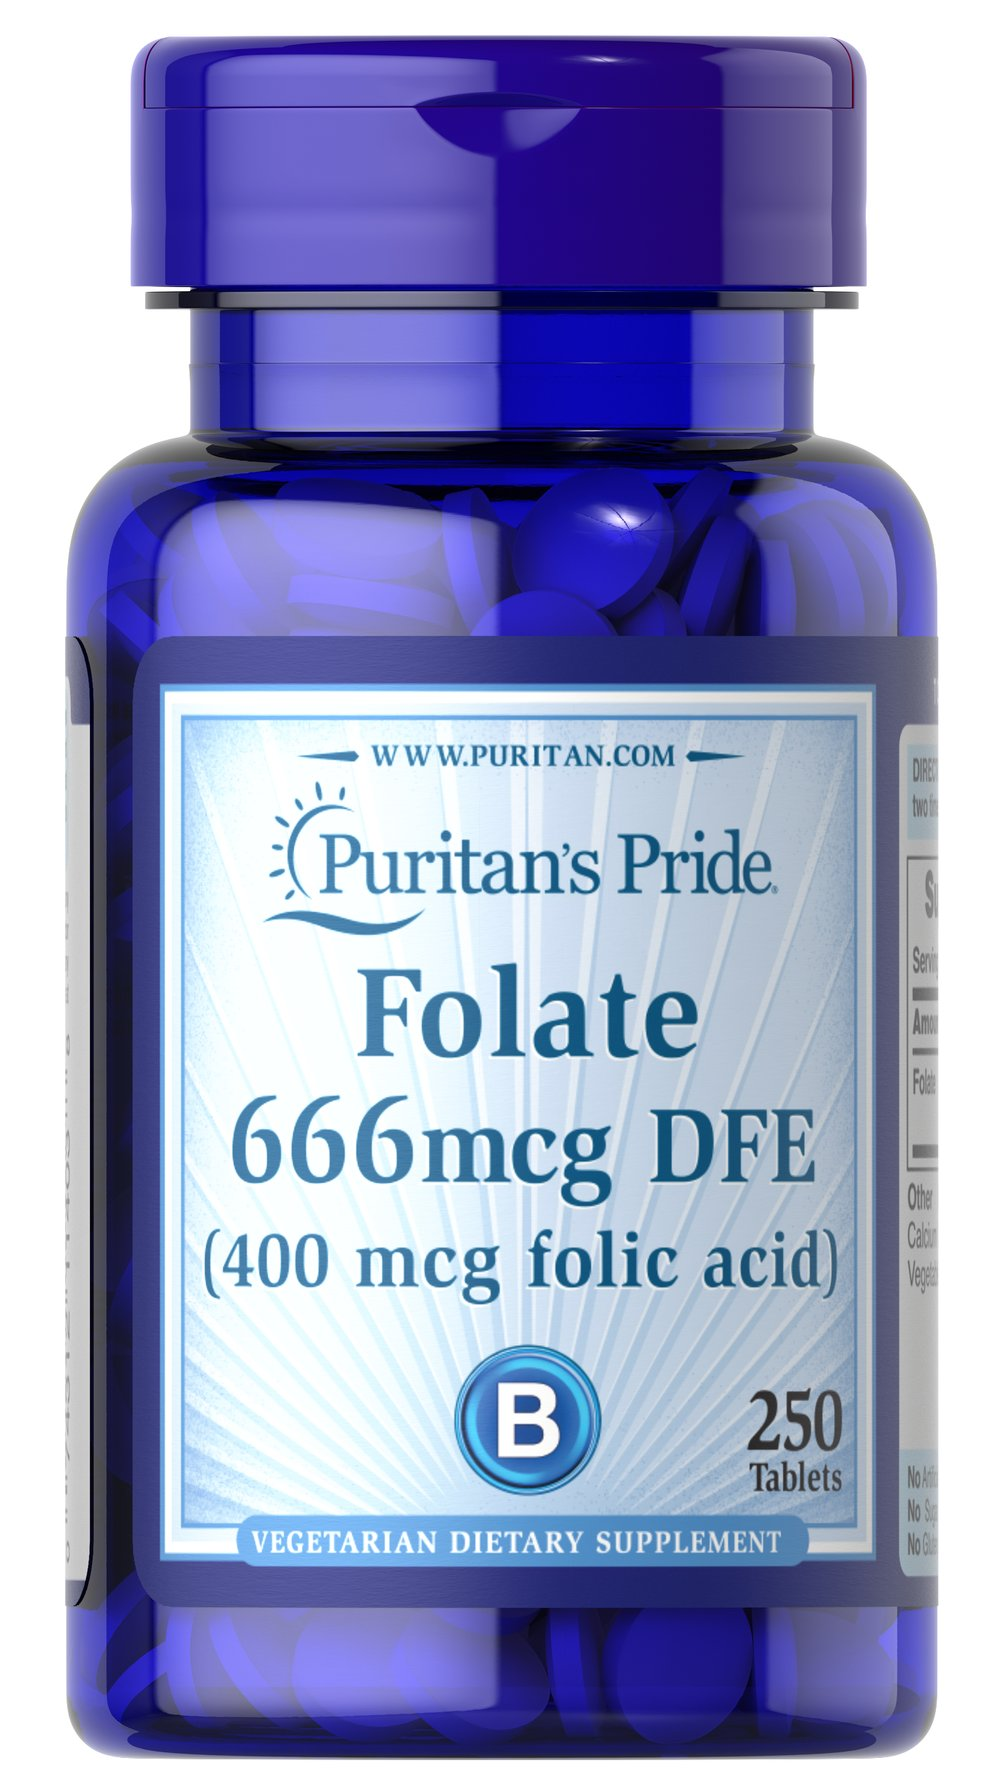 Folic Acid 400 mcg <p>It's well known that Folic Acid is important for pregnant women, but did you also know that this essential B Vitamin also supports cardiovascular health in women and men?** Folic Acid is part of a triad of B Vitamins - along with Vitamins B-6 and B-12 - that helps promote heart health.**</p> 250 Tablets 400 mcg $5.99